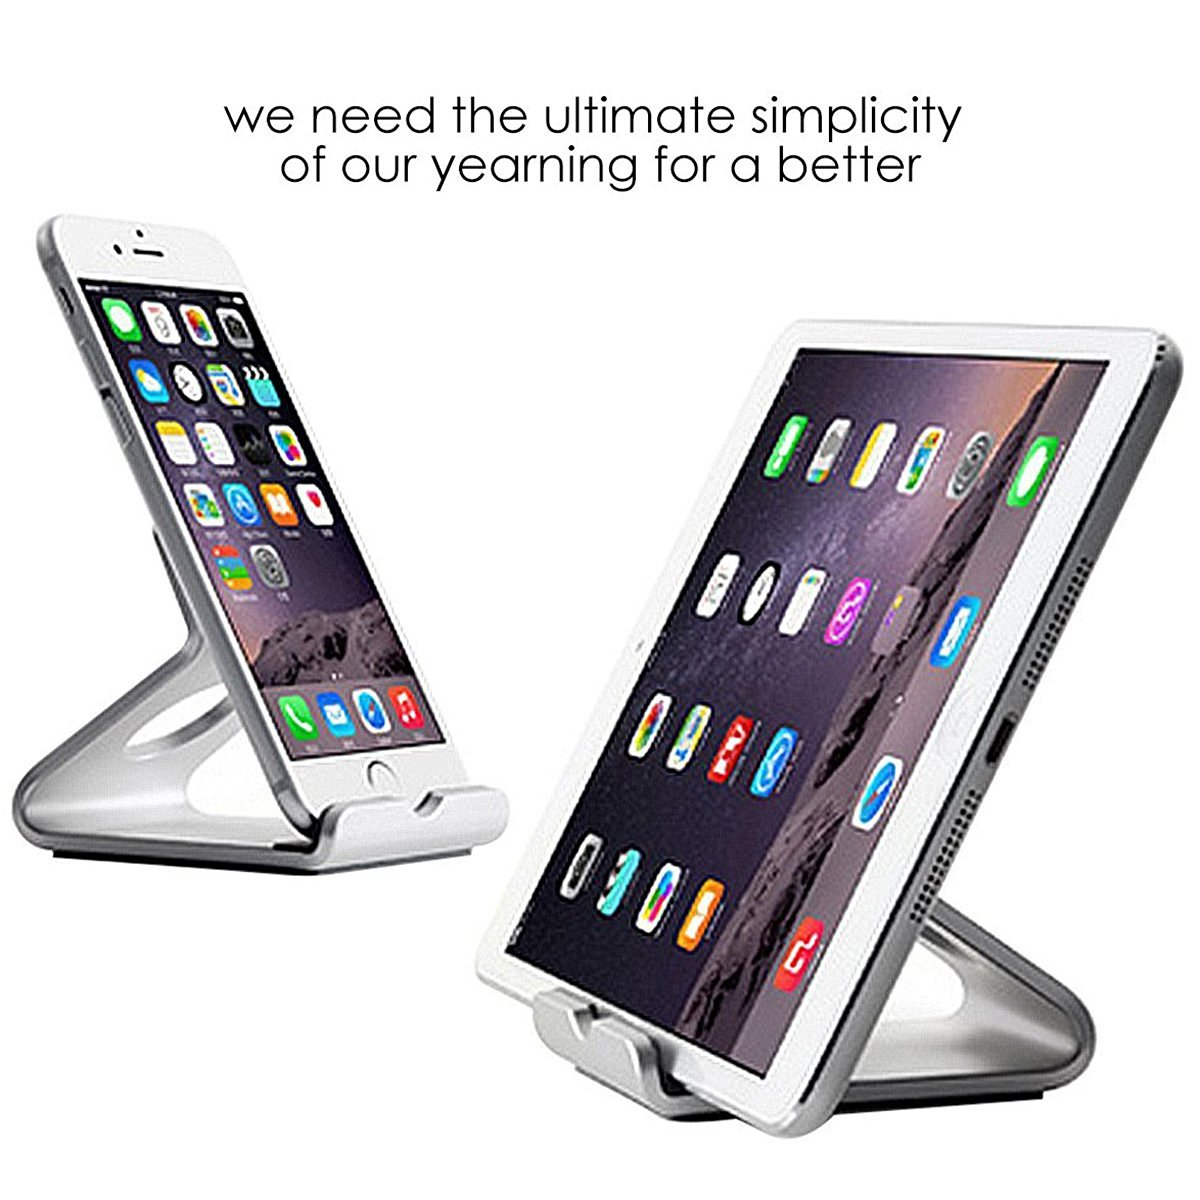 iPhone Stand, iPhone SE Holder ,Aluminum Desktop Phone Tablet Stand Holder For iPhone SE 6S 6Plus 5s Samsung Galaxy S7 /S7 Edge S6 S5 Note5 4 3 Kindle Fire 7 Tablet(3.5~6inch Mobile & 7 inch Tablet)